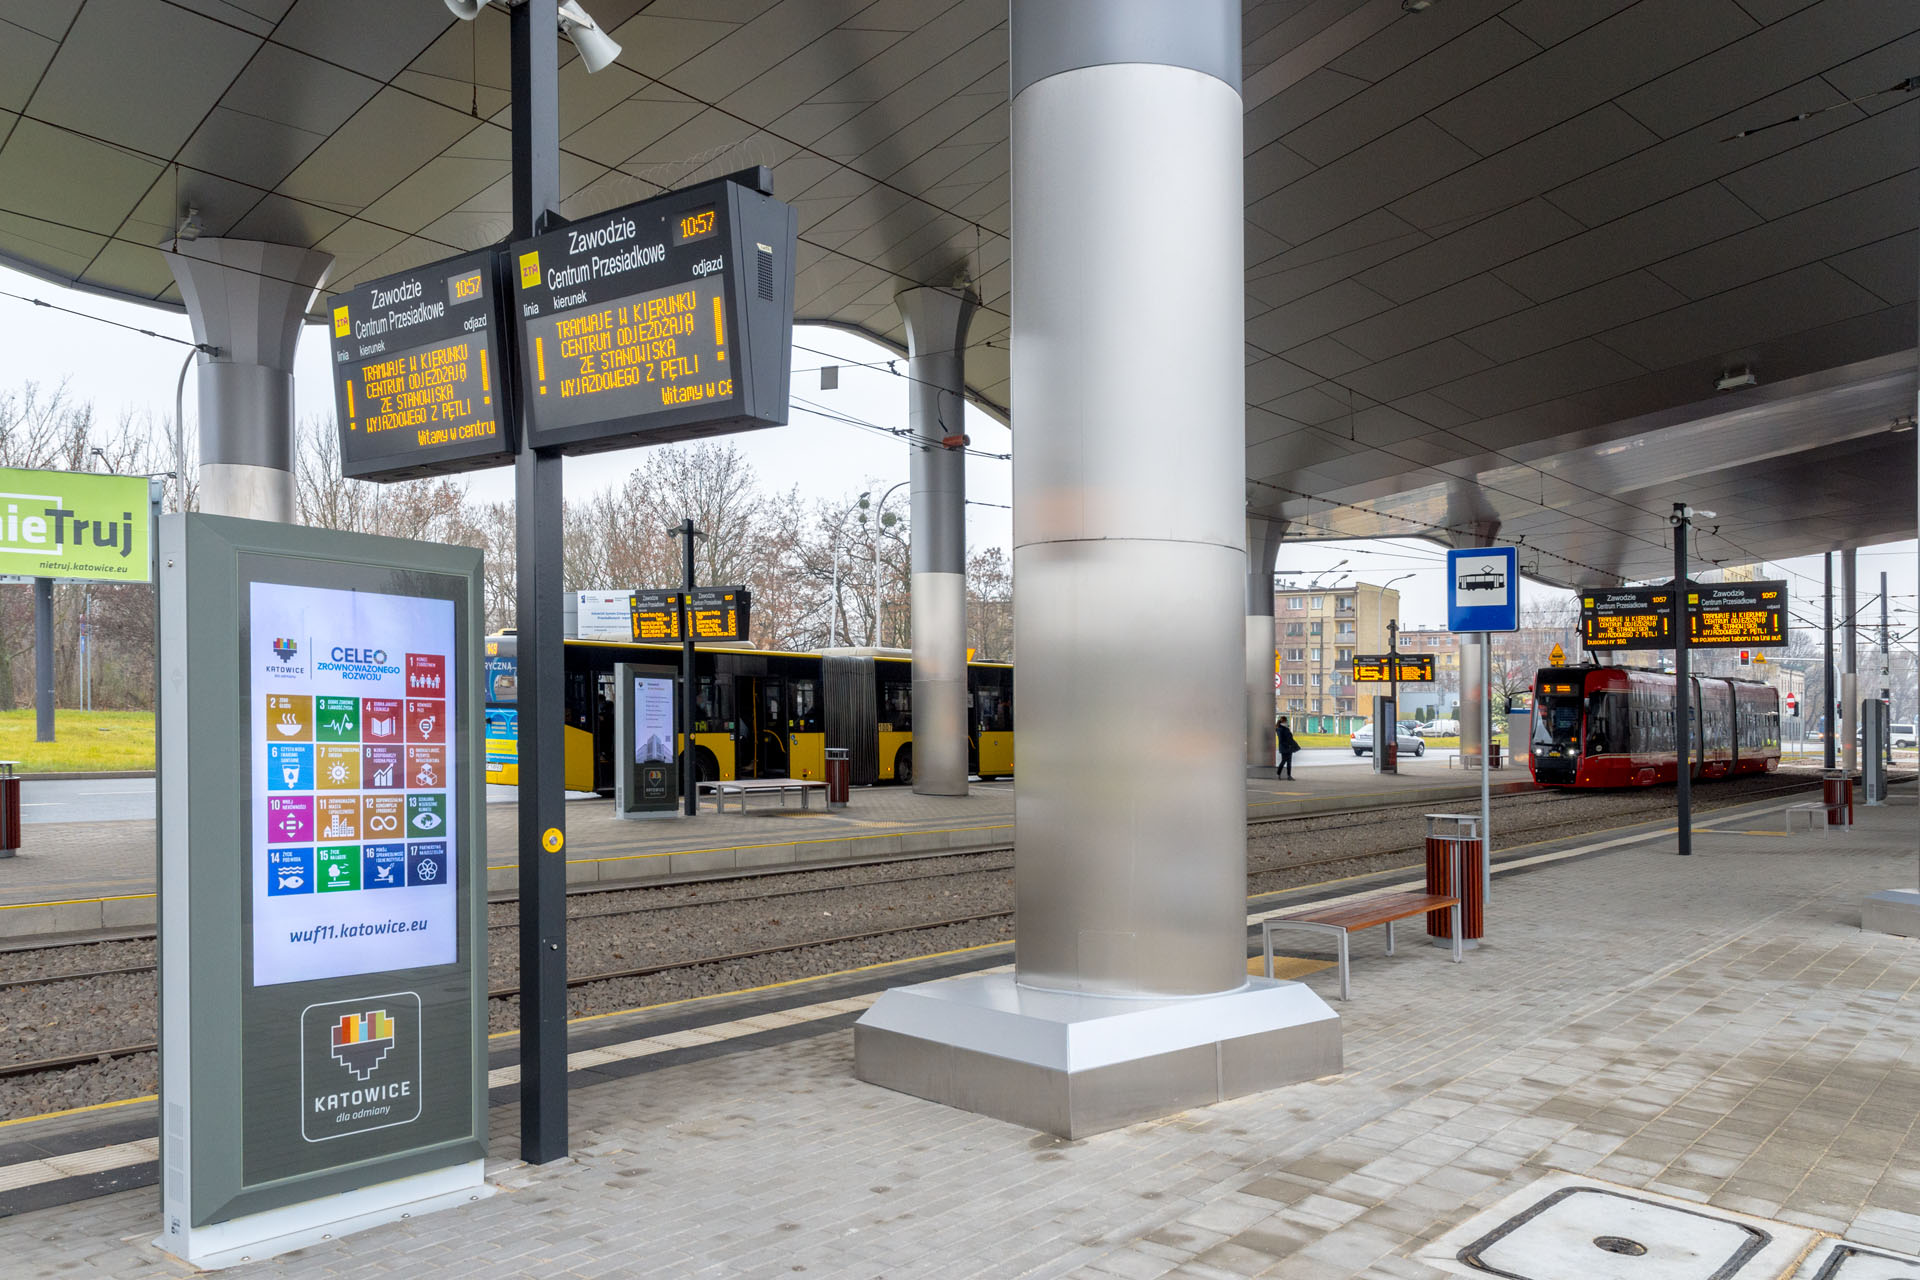 SDIP, Dynamic Passenger Information Display System and info kiosk, LED passenger information boards. This project was cofinanced by EU.